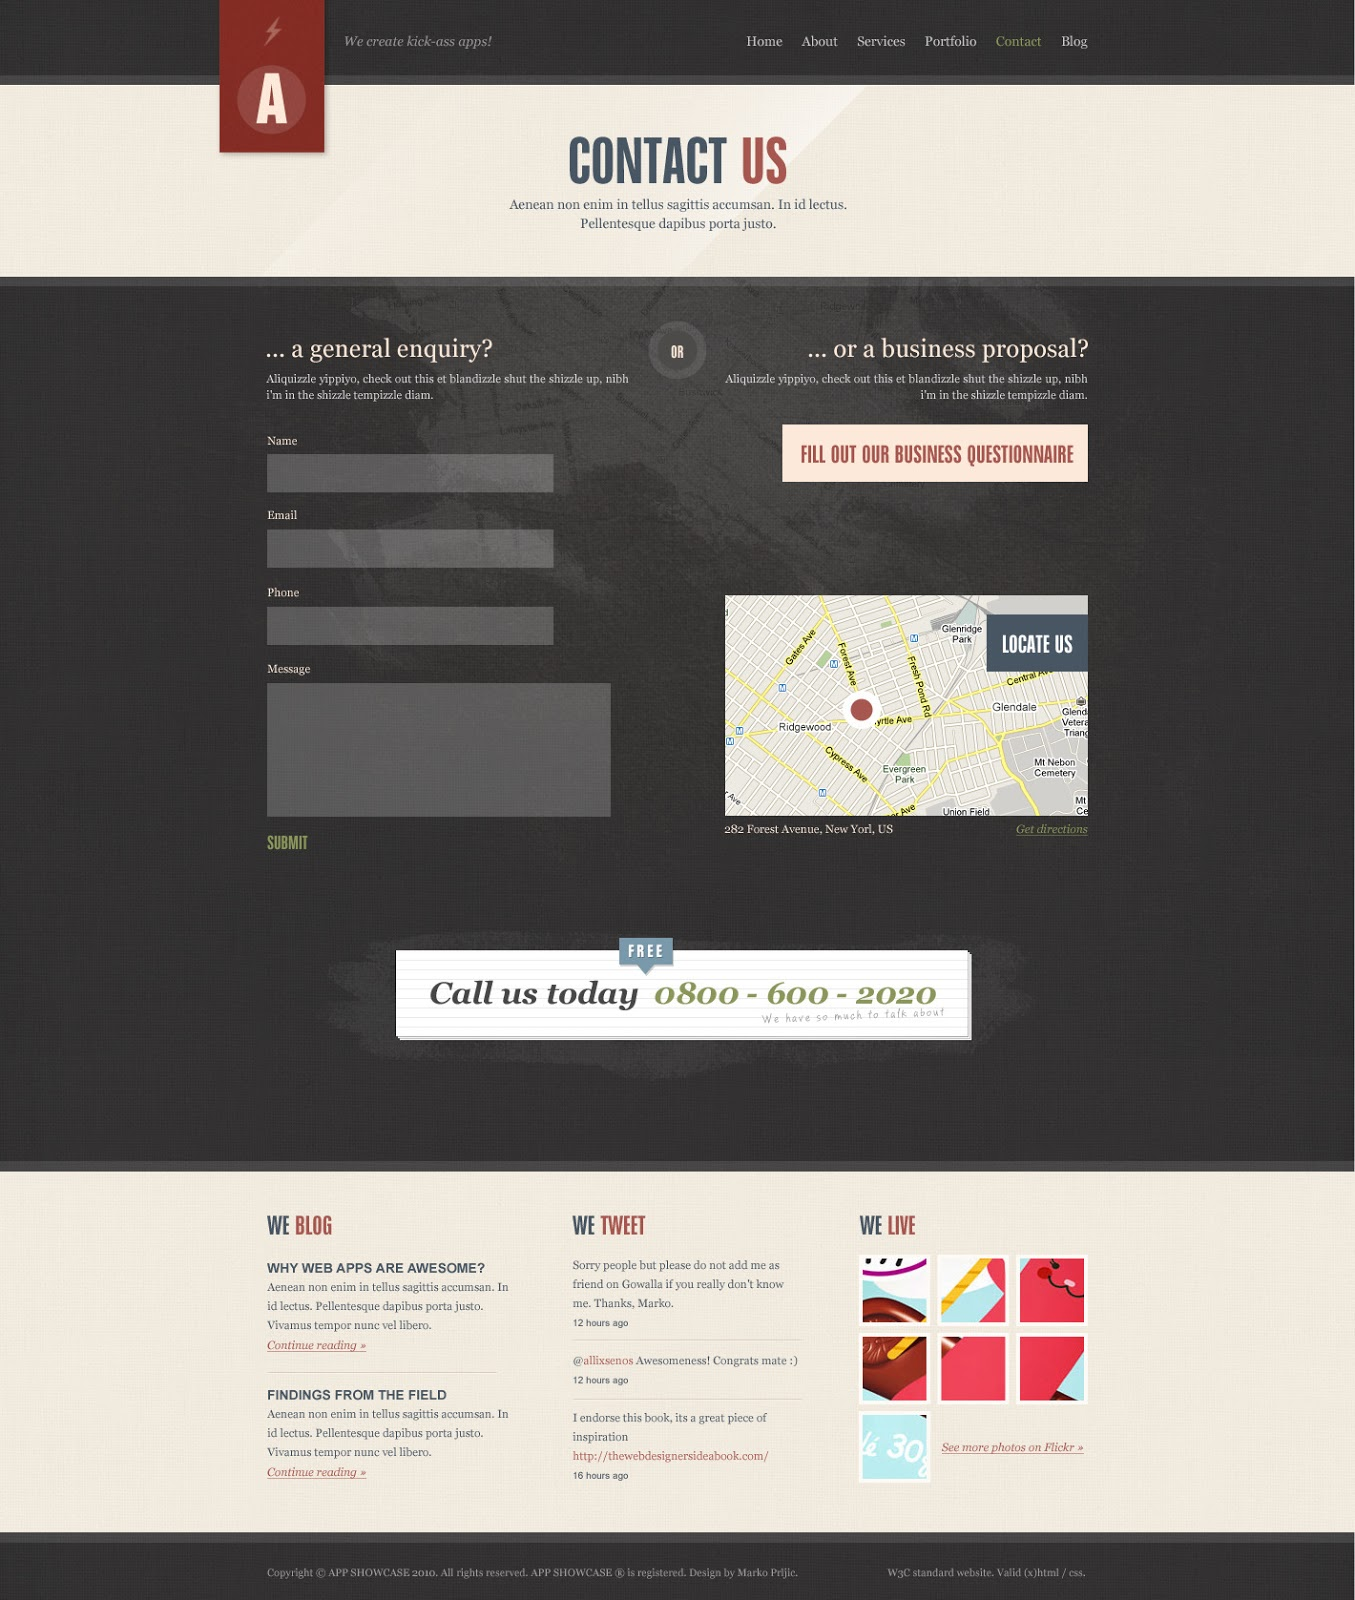 Rocksolid-App-Showcase-Agency-Wordpress-Templates